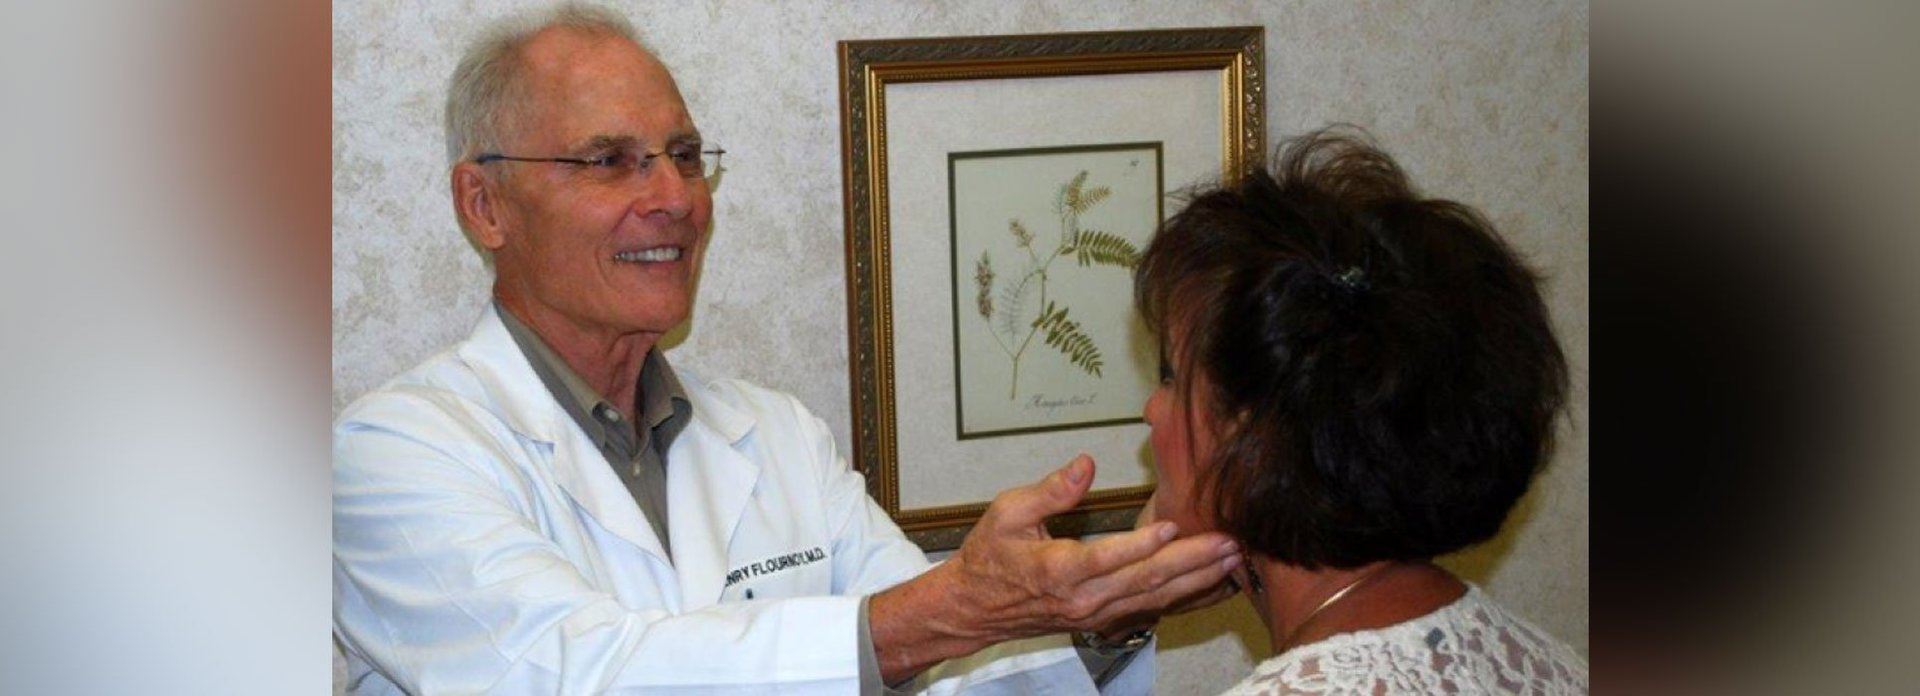 Dr. Henry Flournoy With Patient